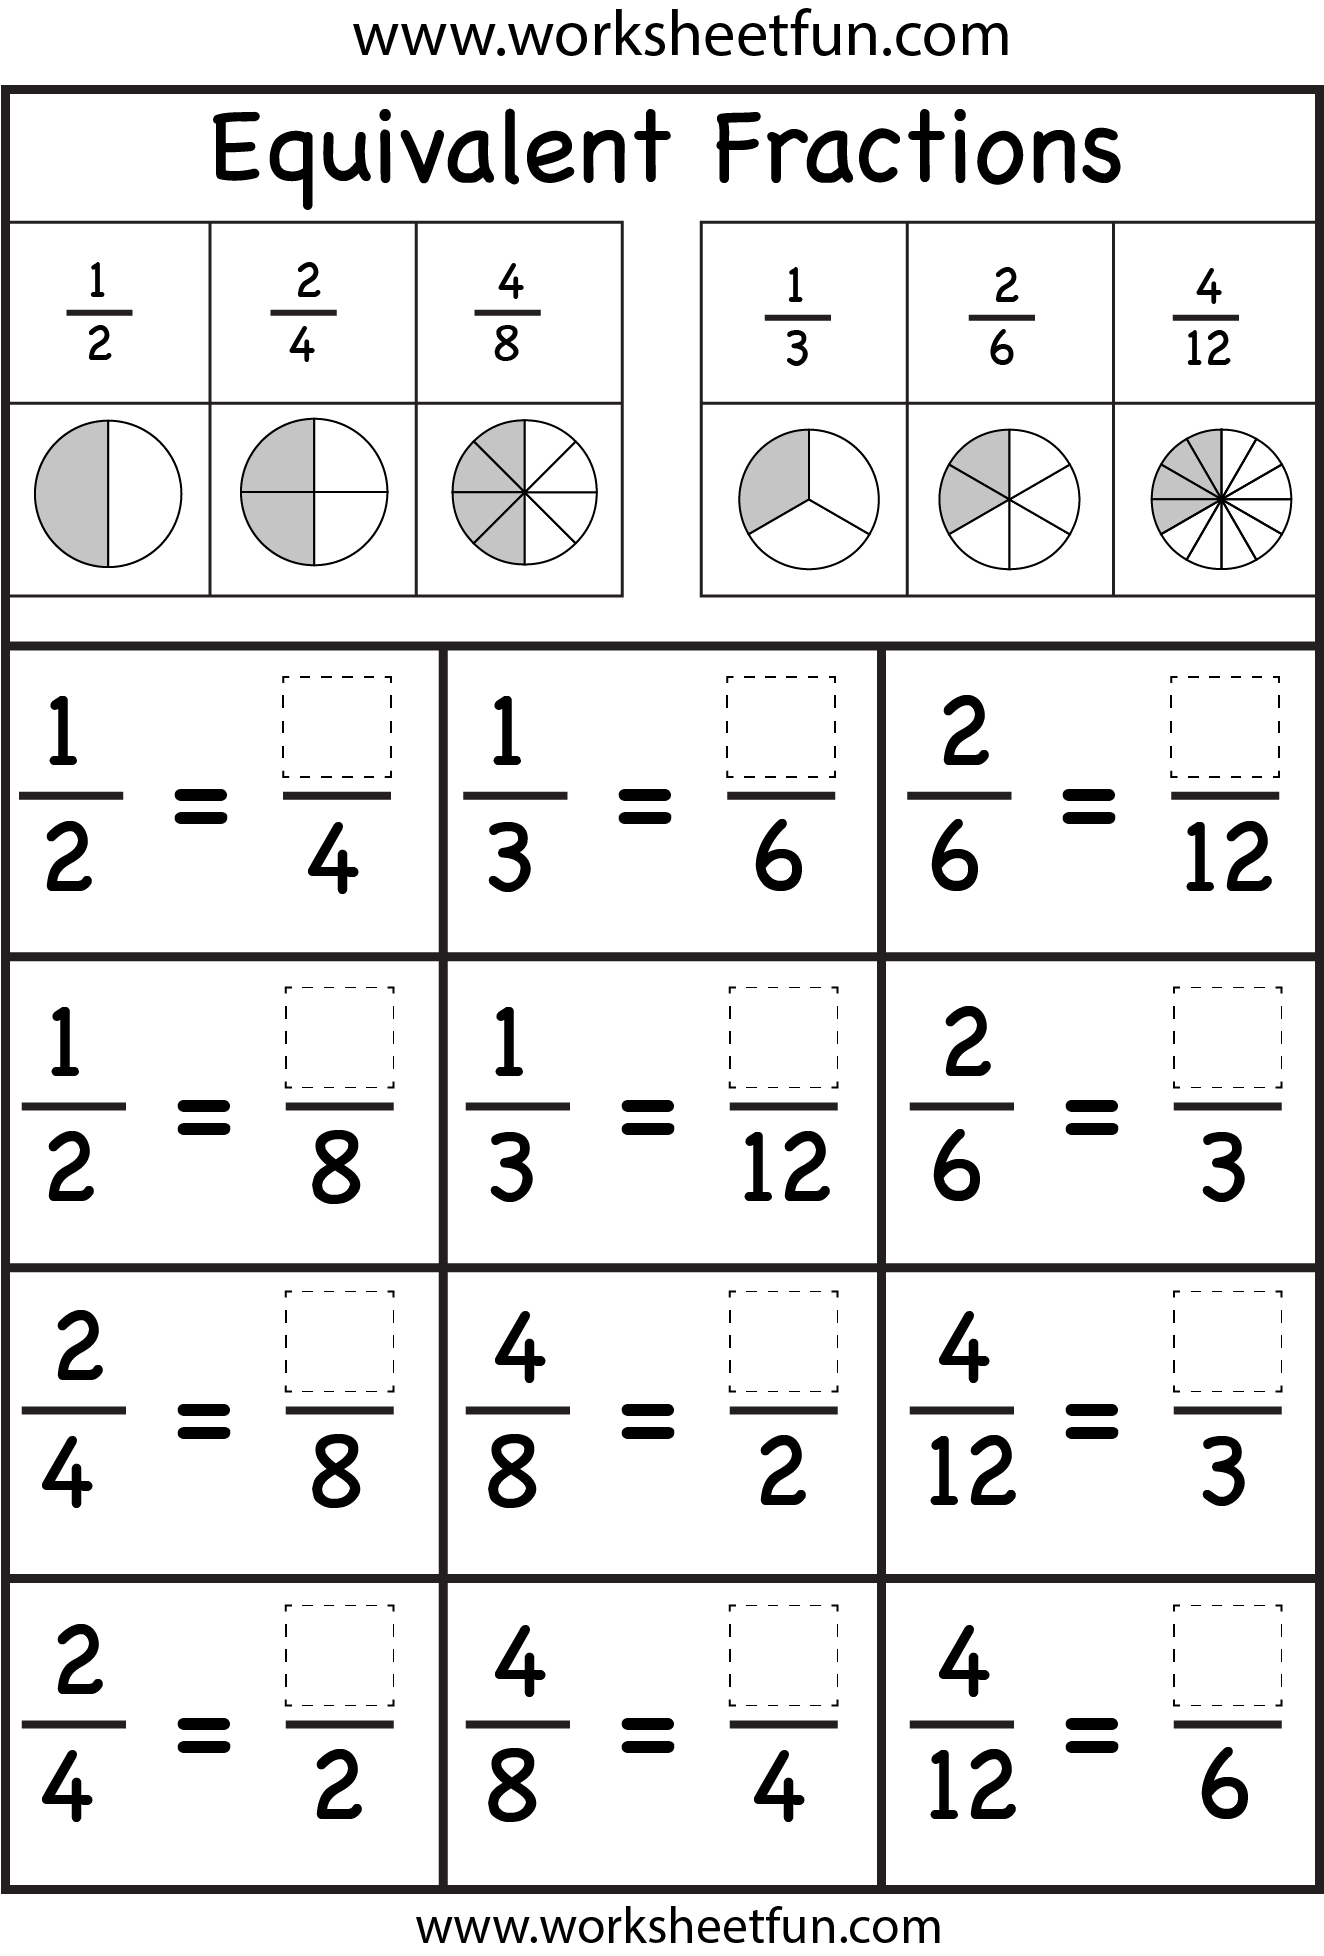 medium resolution of Pin by Joicy Amaral Souza on Education - Math   Math fractions worksheets